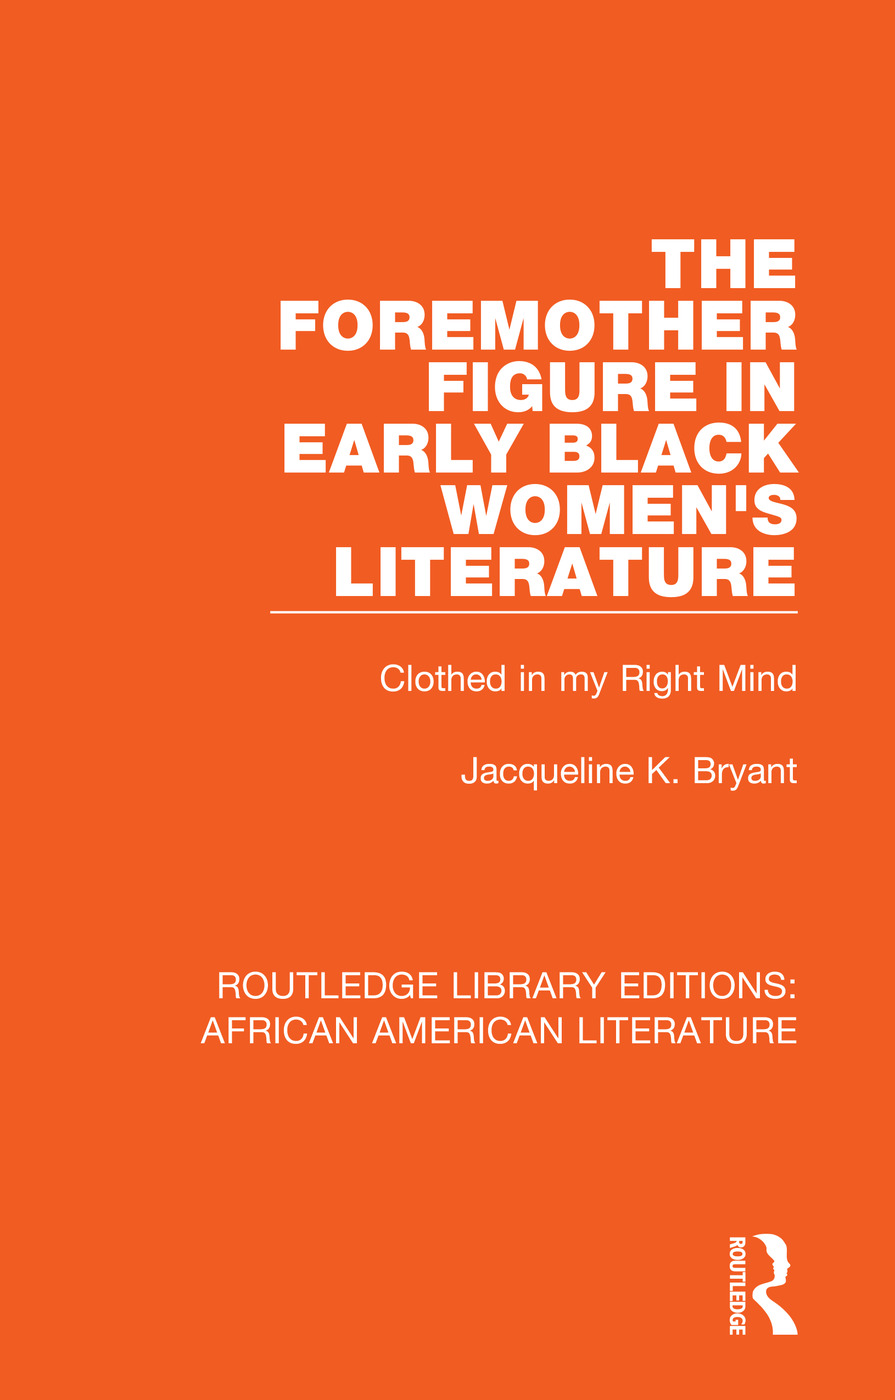 The Foremother Figure in Early Black Women's Literature: Clothed in my Right Mind book cover